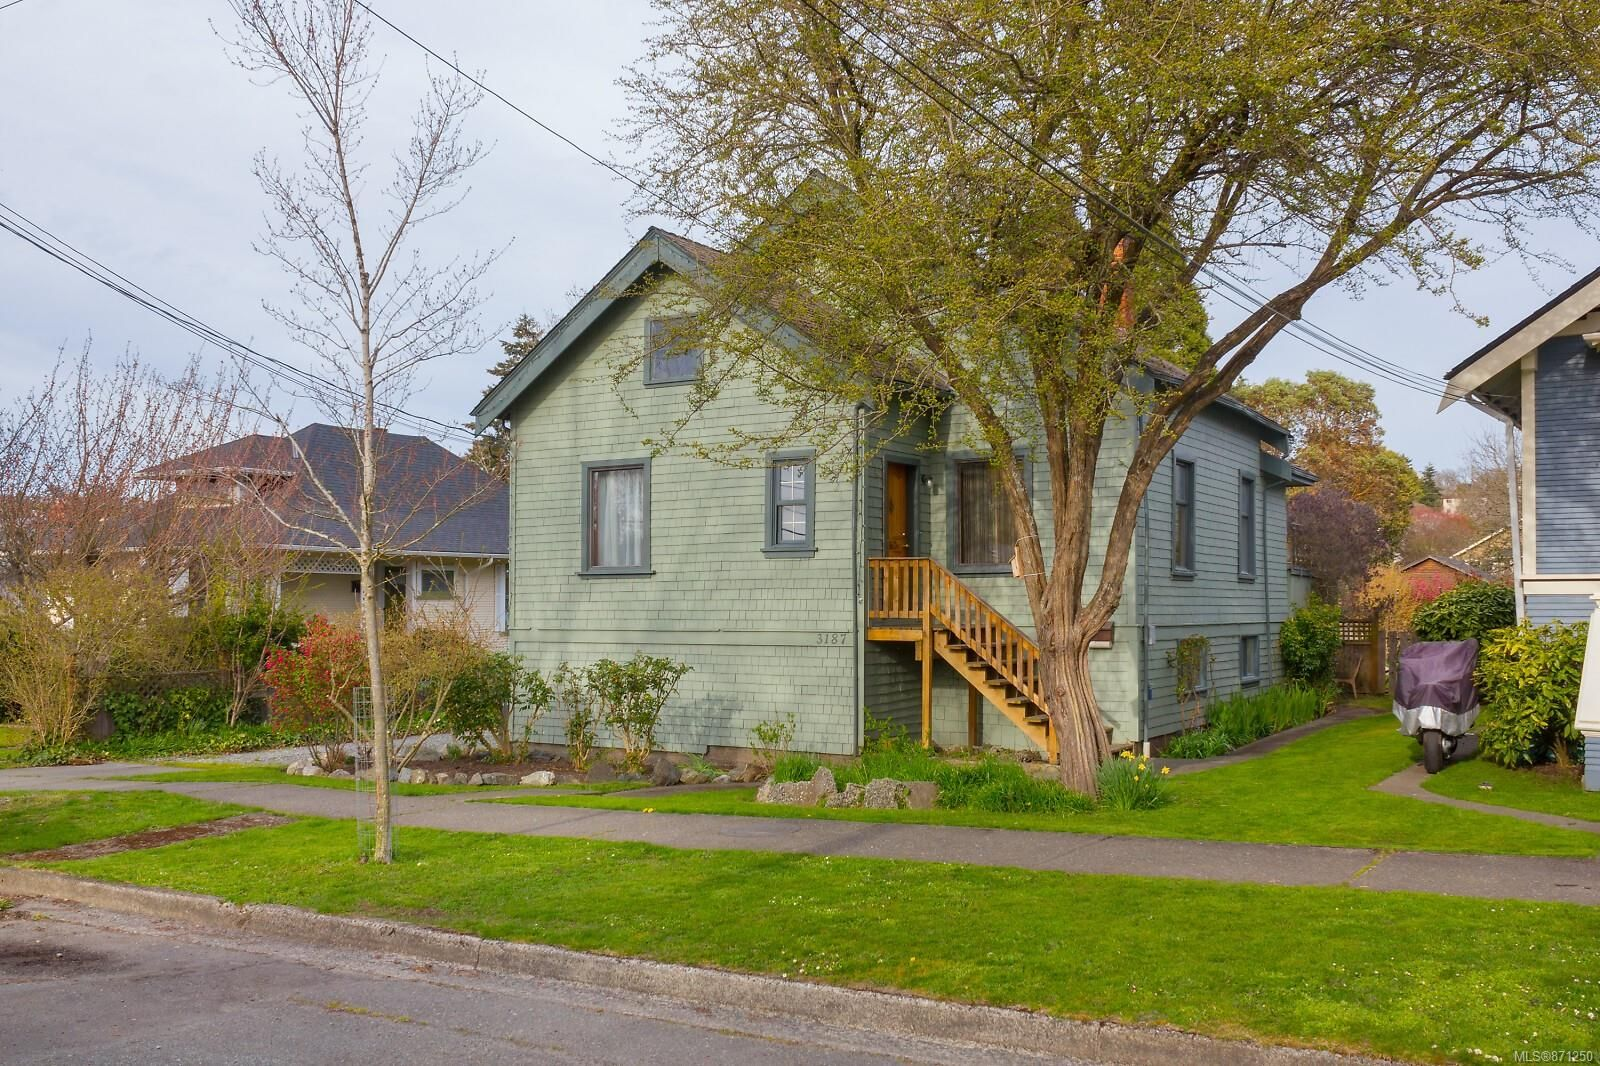 Main Photo: 3187 Fifth St in : Vi Mayfair House for sale (Victoria)  : MLS®# 871250